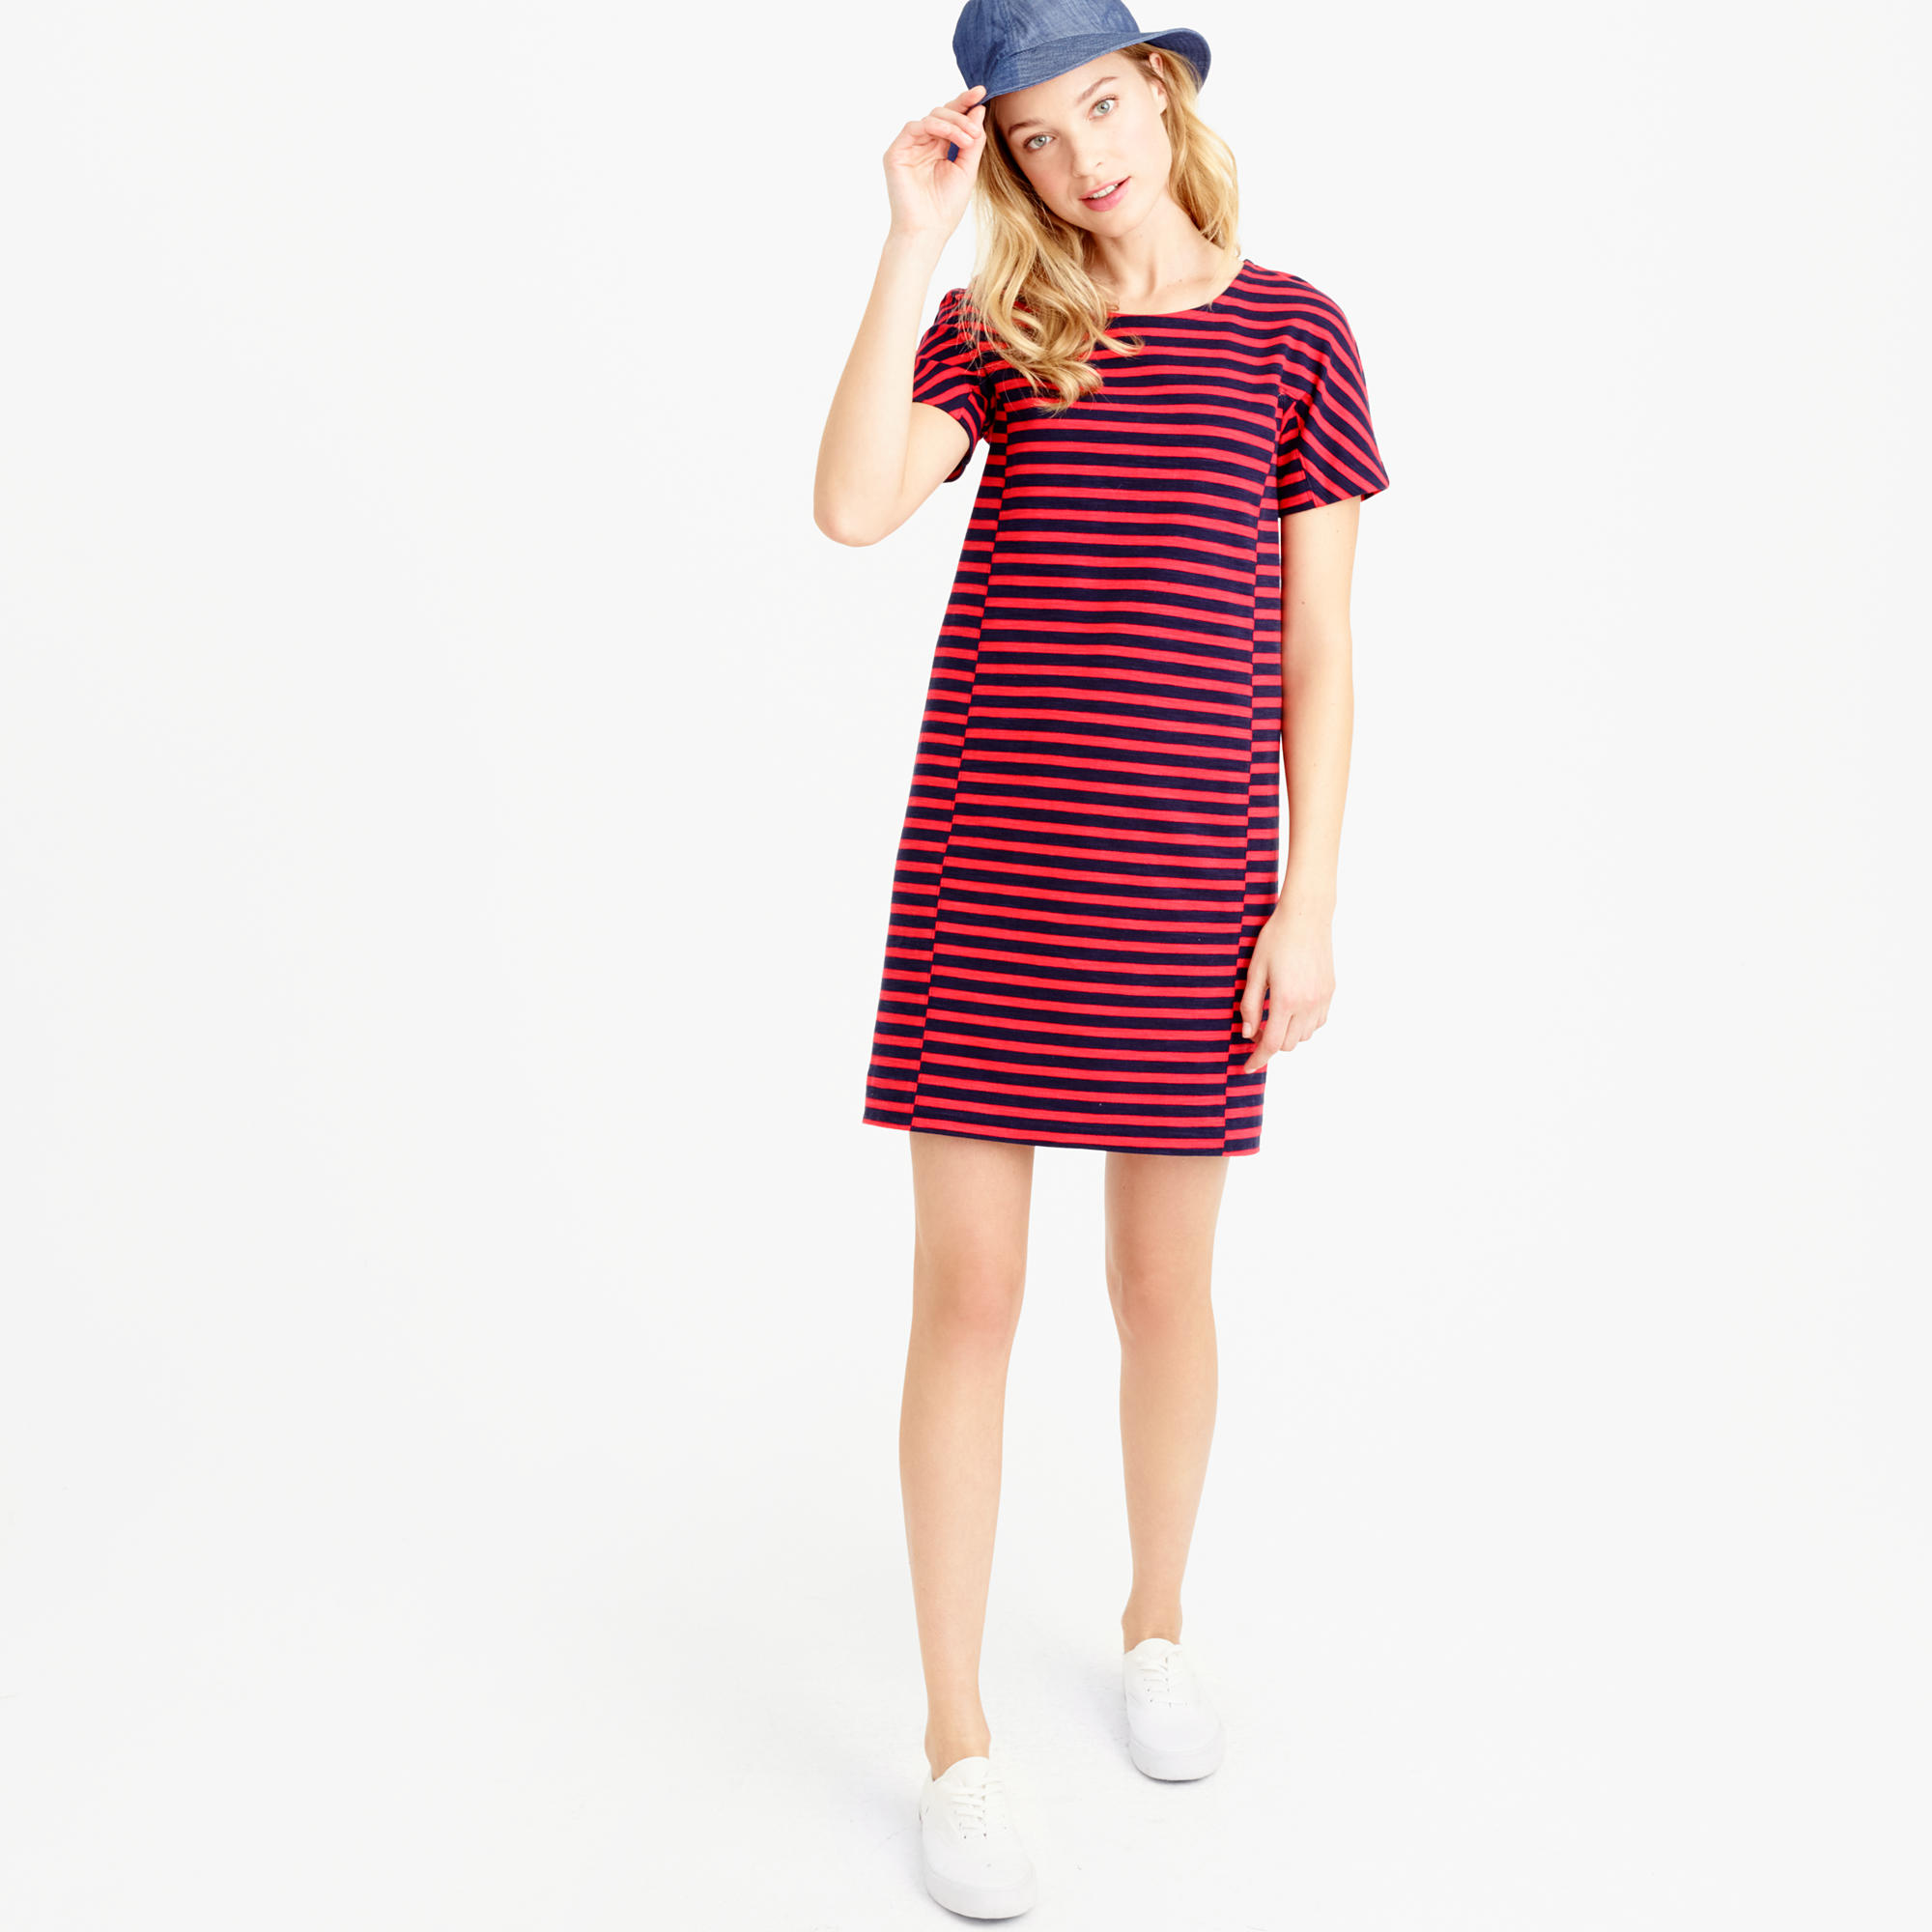 Petite striped T-shirt dress : Women dresses | J.Crew